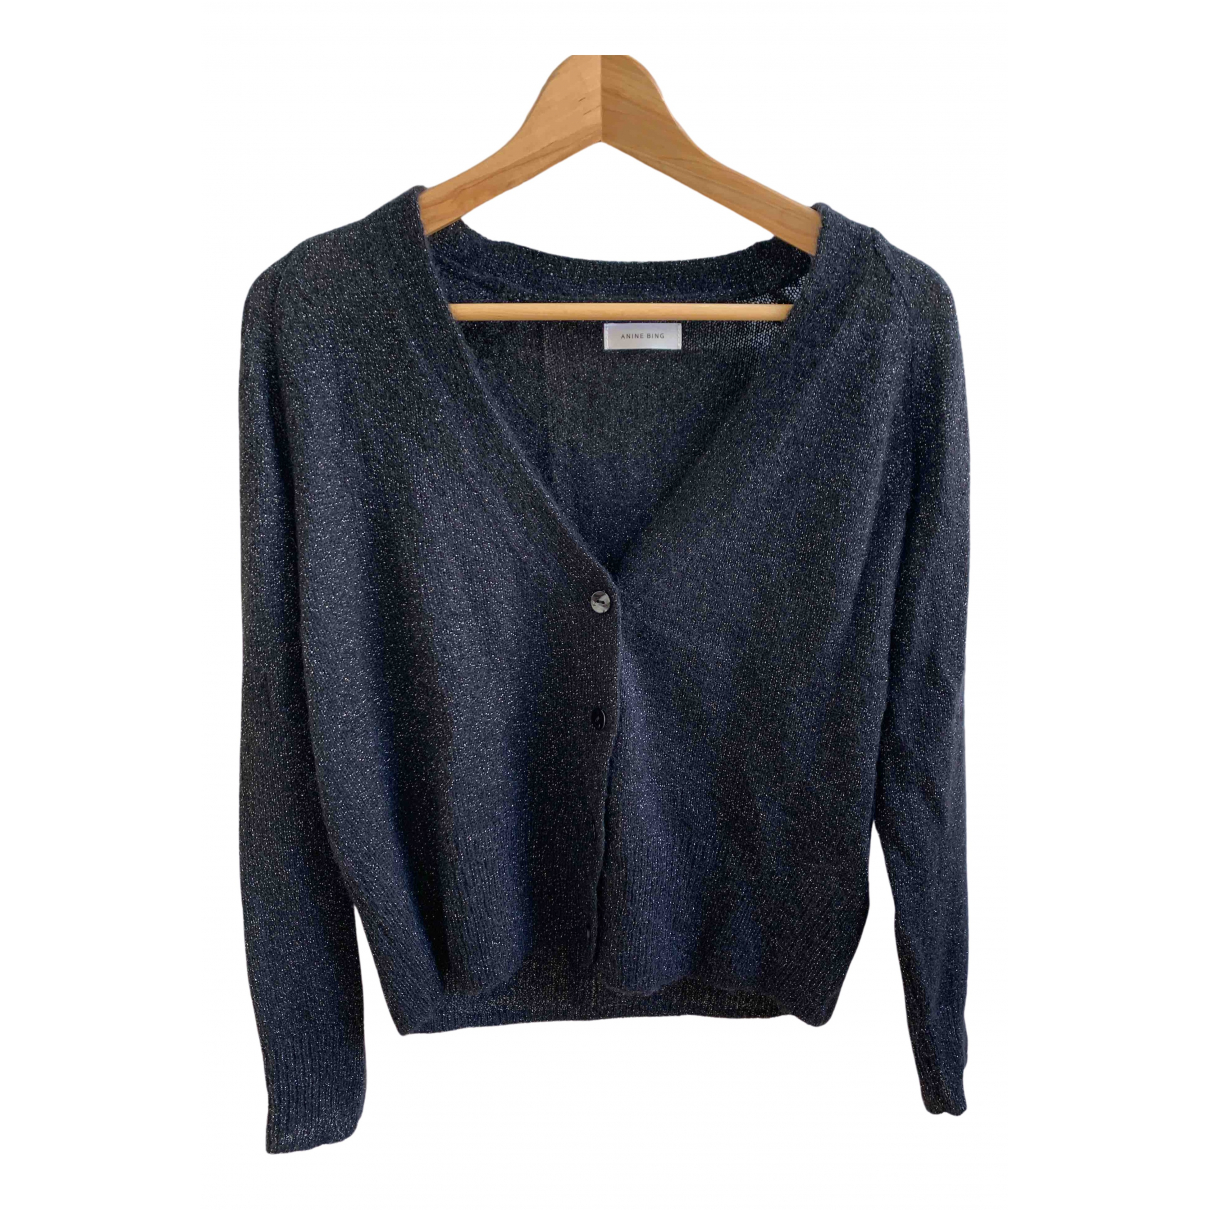 Anine Bing \N Black Wool Knitwear for Women S International